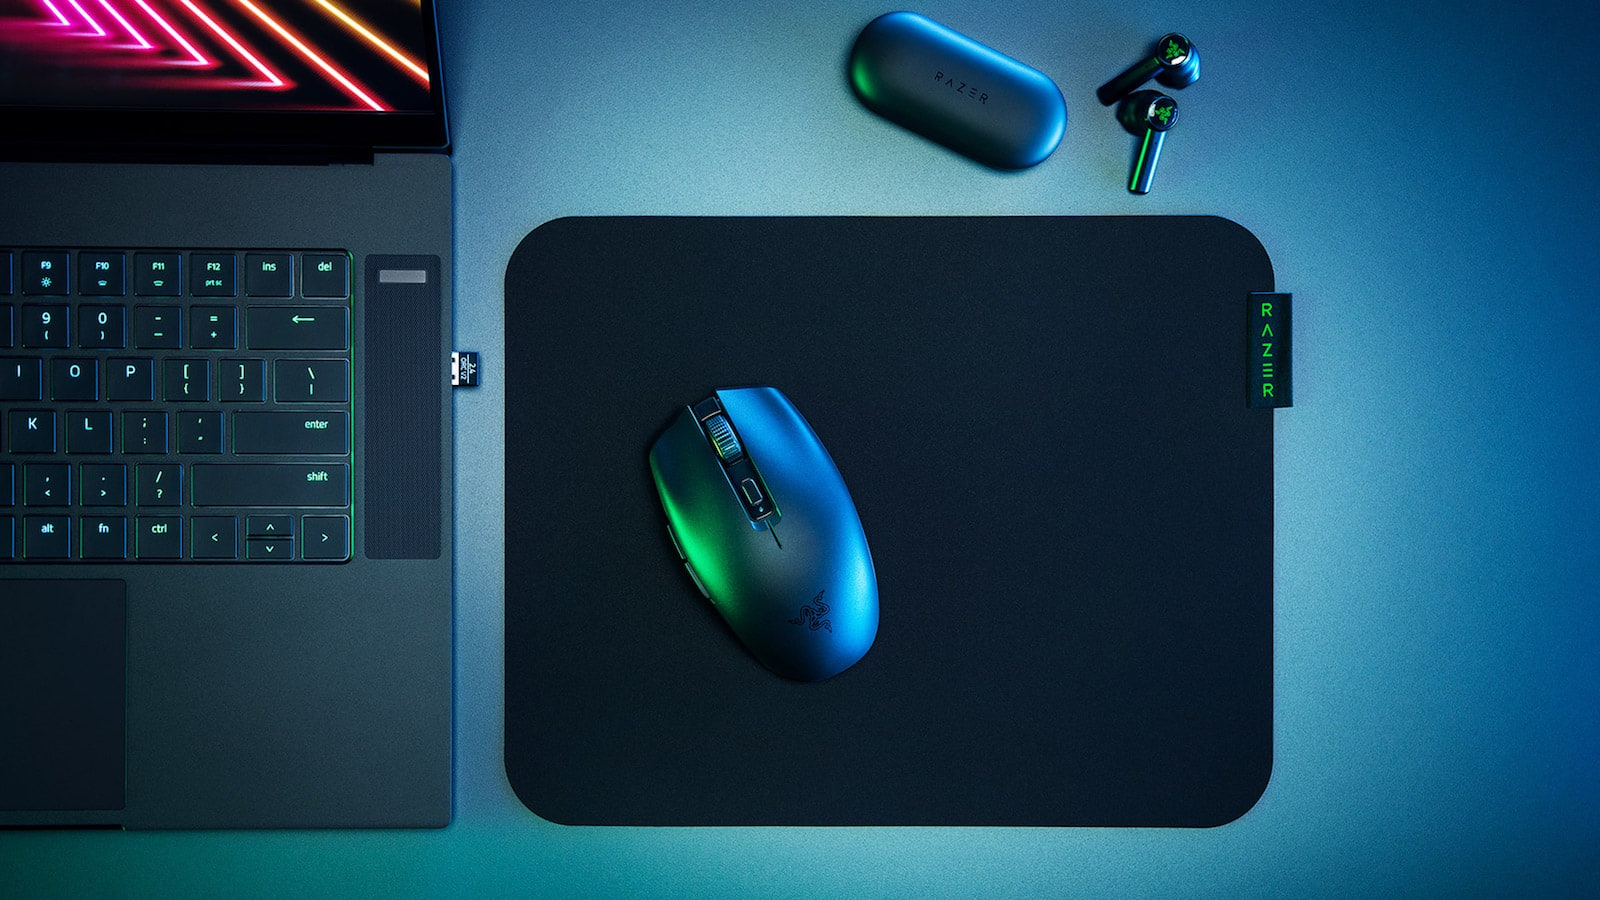 Razer Orochi V2 wireless gaming mouse features a 5G advanced optical sensor